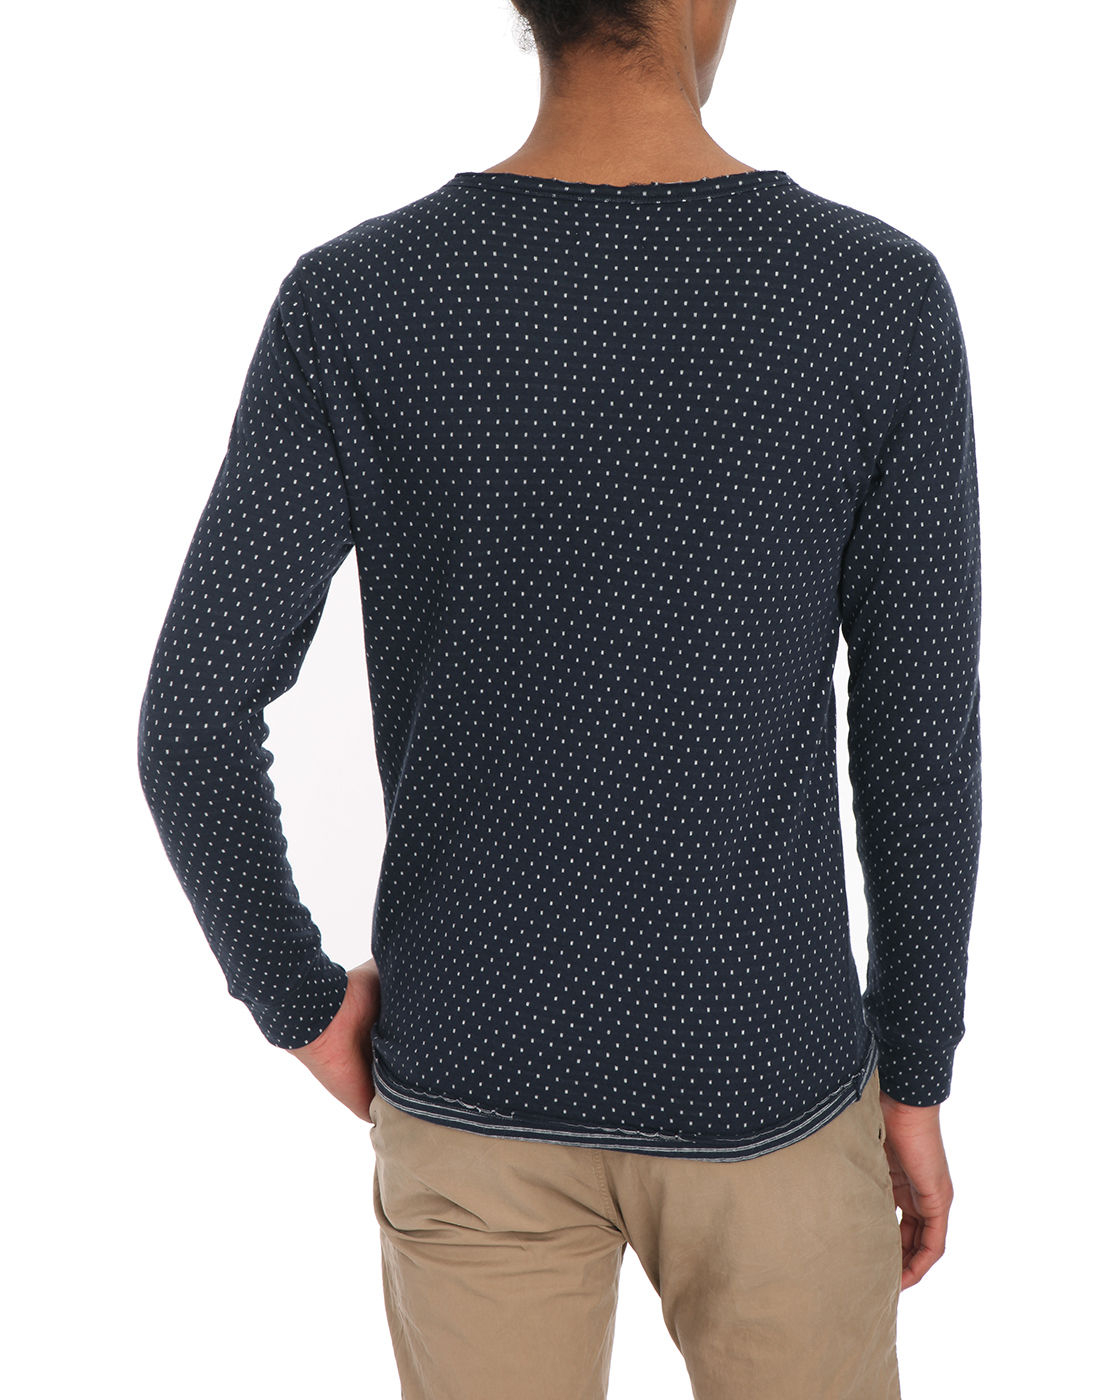 knowledge cotton apparel navy double layer white dots ls t shirt in blue for men navy lyst. Black Bedroom Furniture Sets. Home Design Ideas